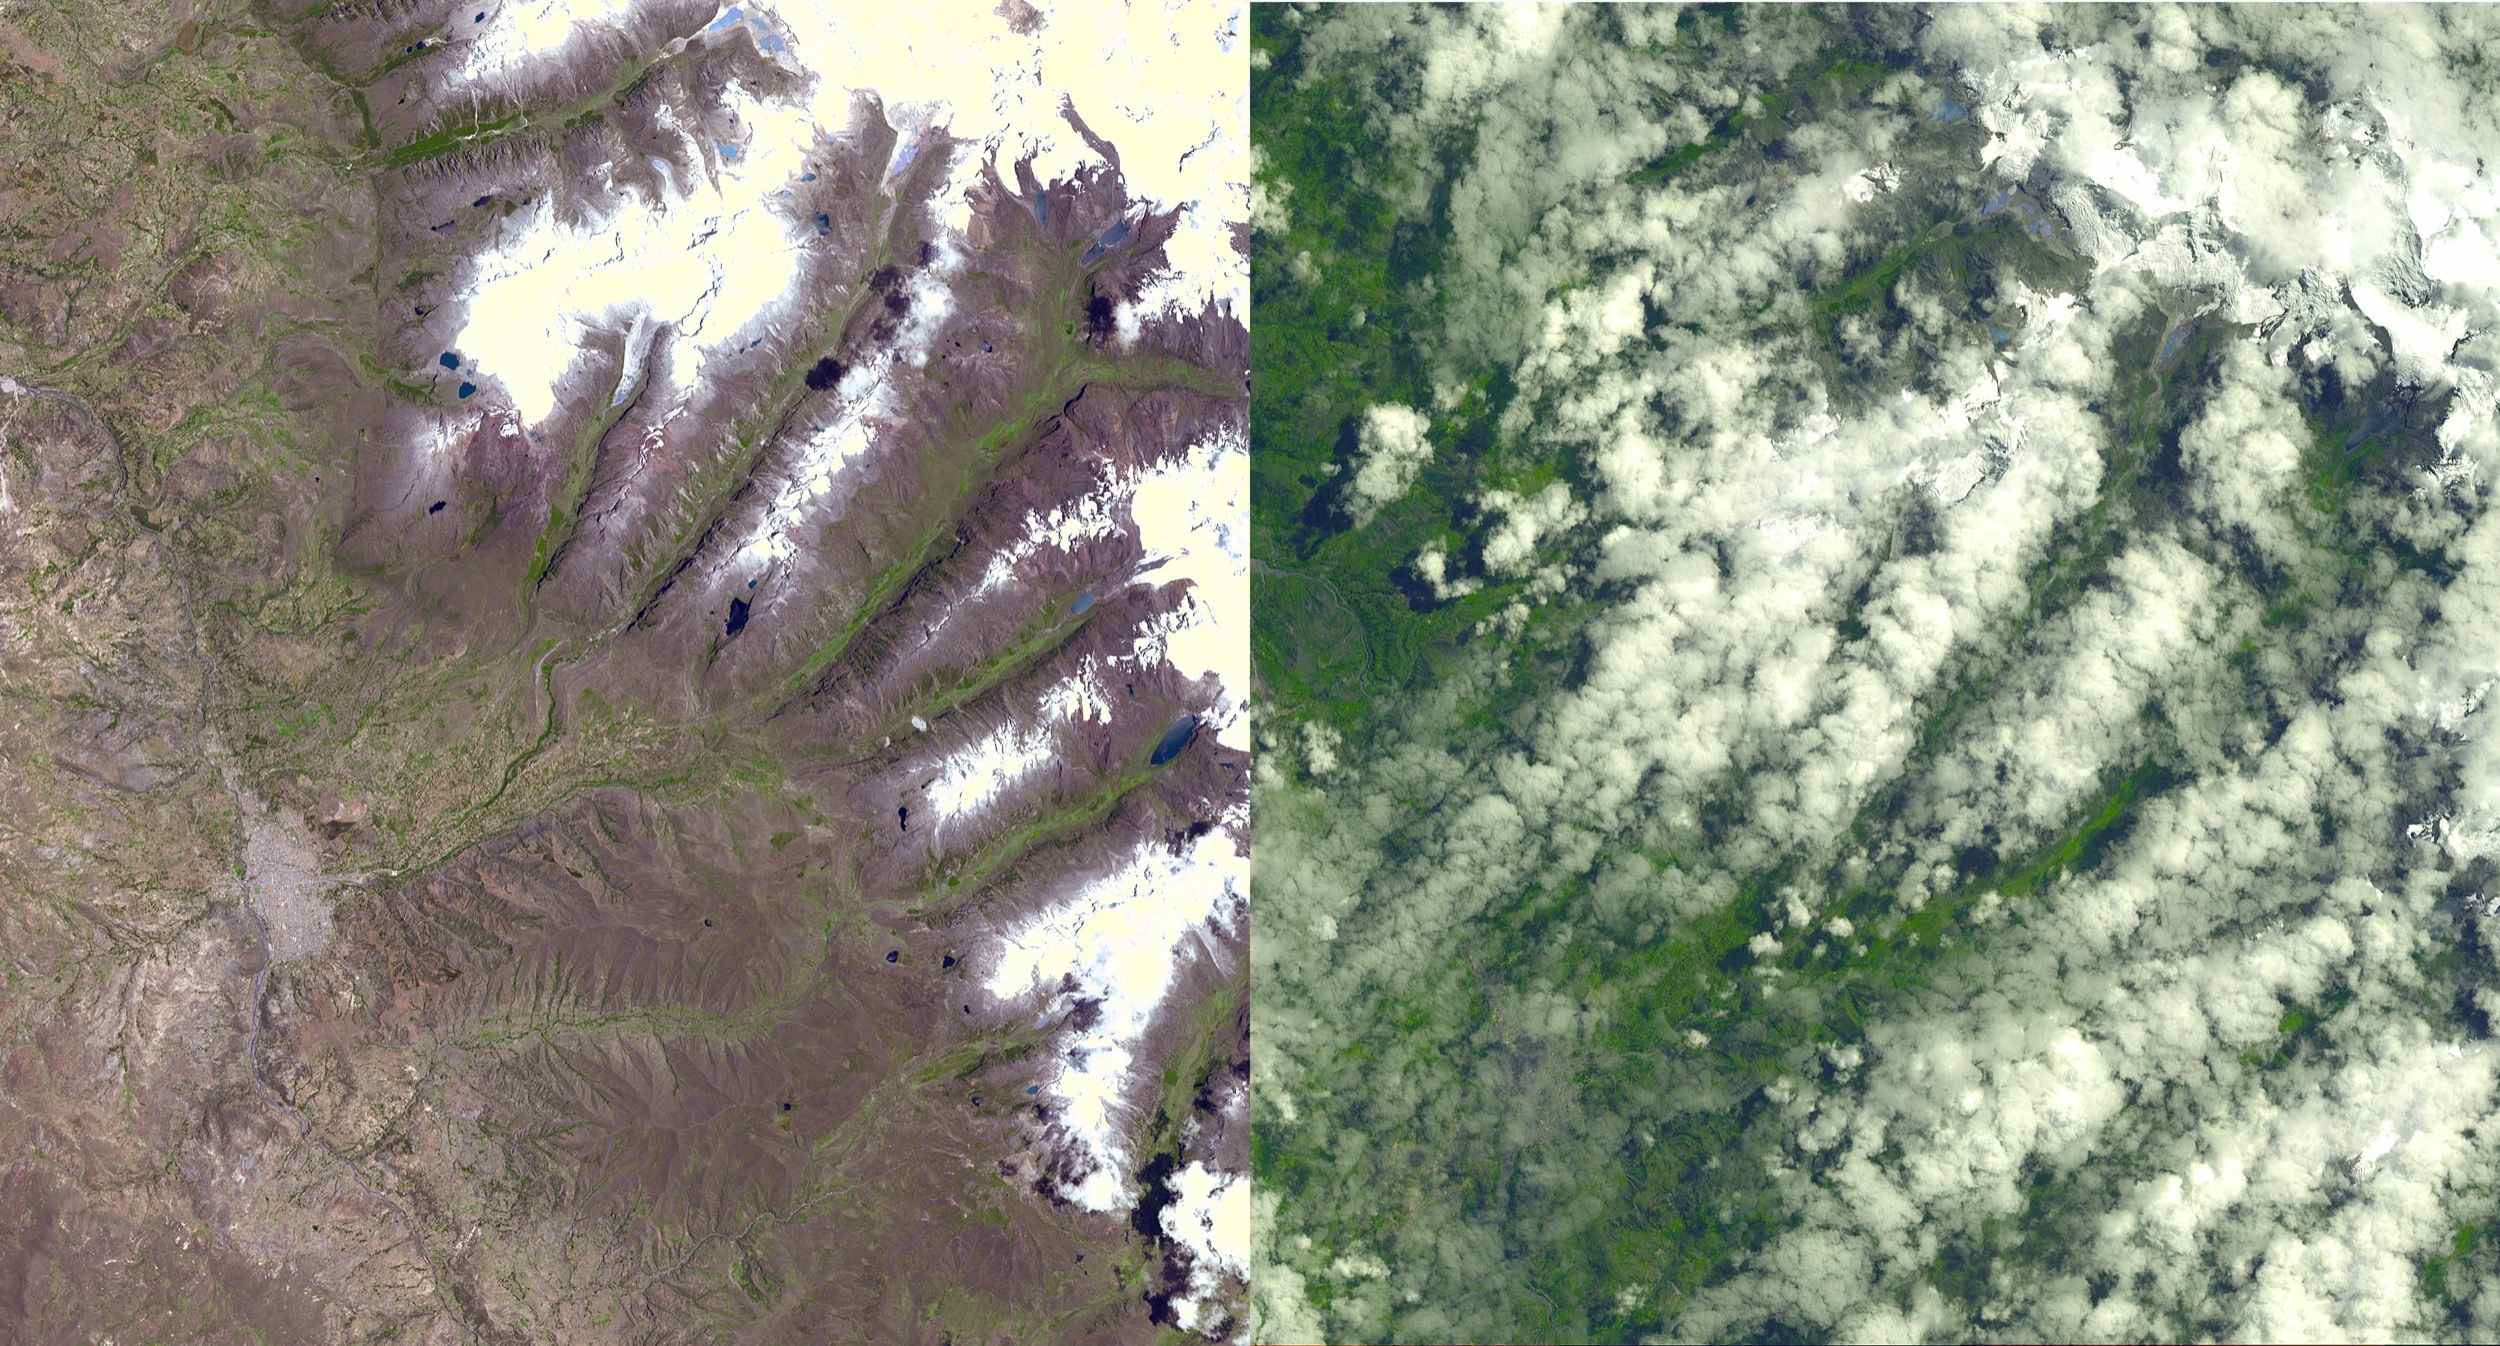 An Earth-monitoring instrument aboard NASA's Terra satellite kept a close eye on a potential glacial disaster in the making in Peru's spectacular, snow-capped Cordillera Blanca (White Mountains), the highest range of the Peruvian Andes.